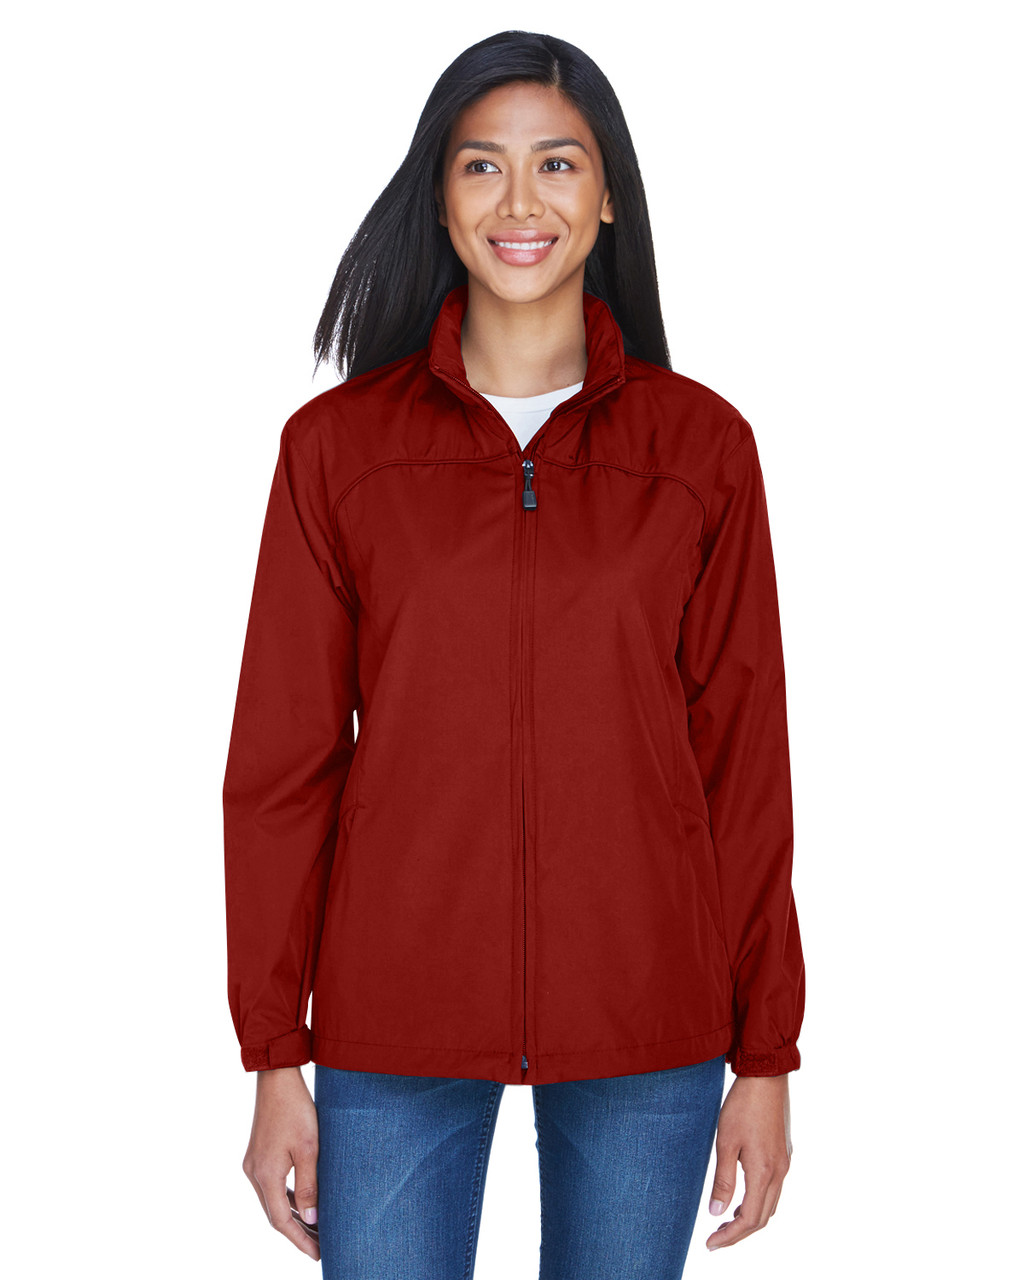 Molten Red - 78032 North End Ladies' Techno Lite Jacket | BlankClothing.ca